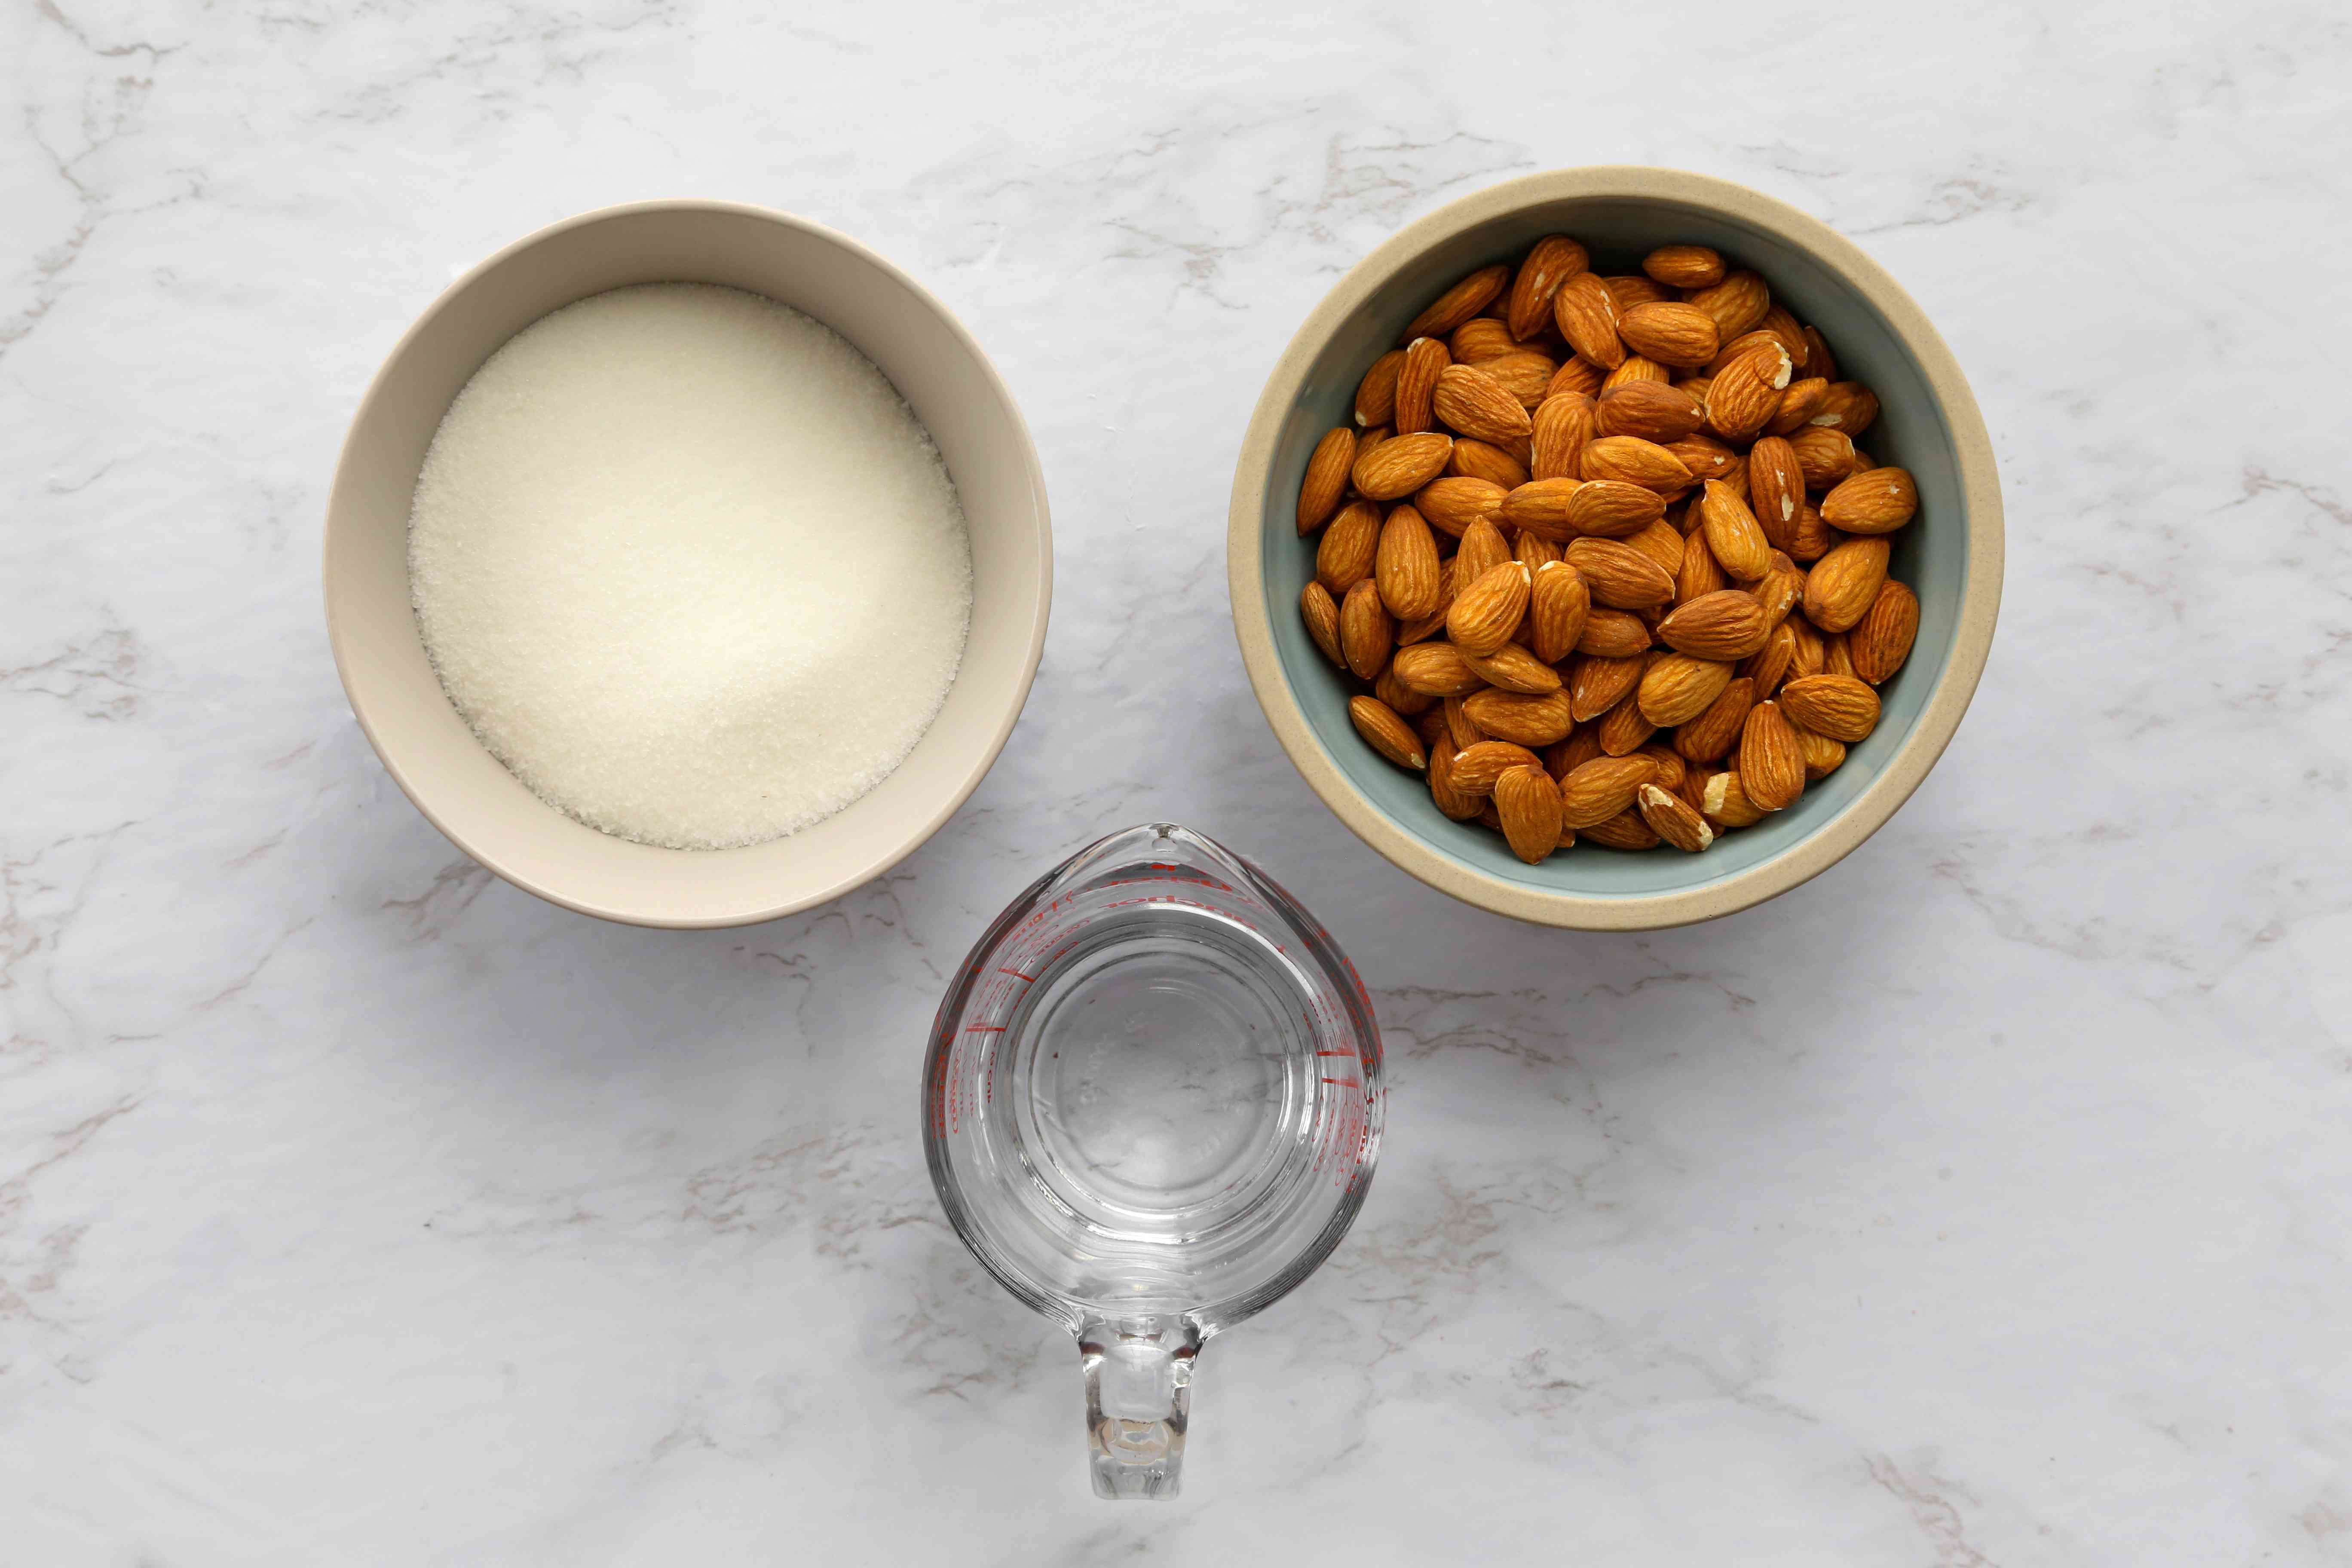 Candied Almonds ingredients